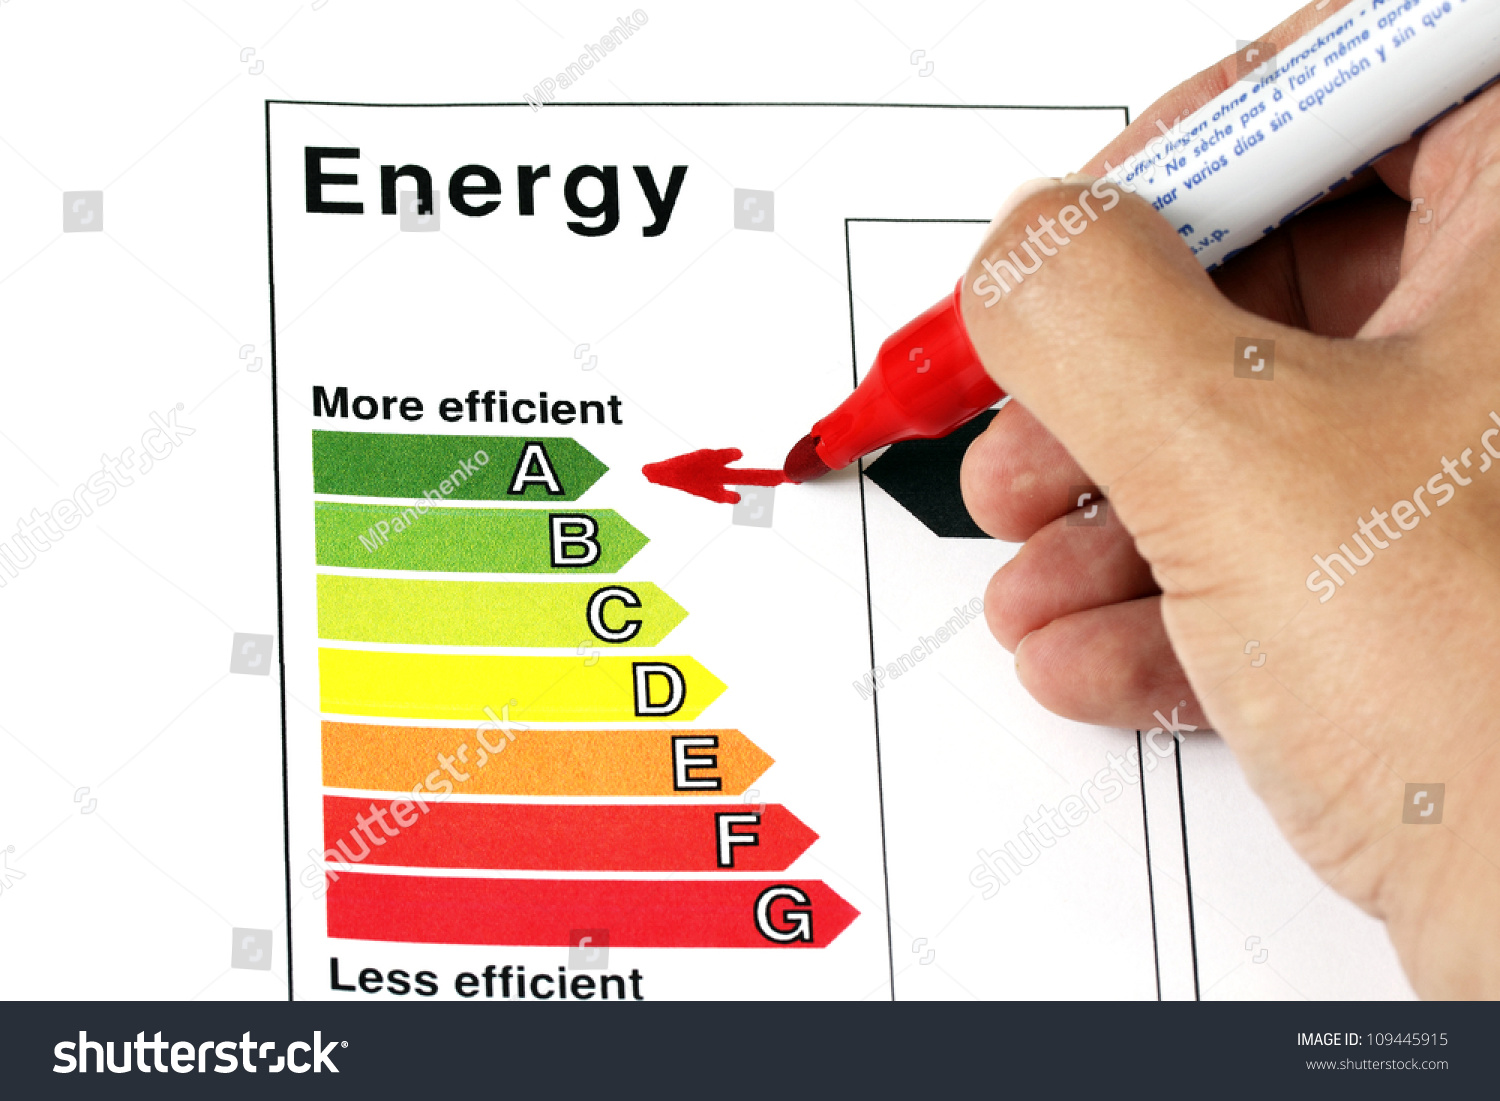 how to find energy in from energy out and efficiency